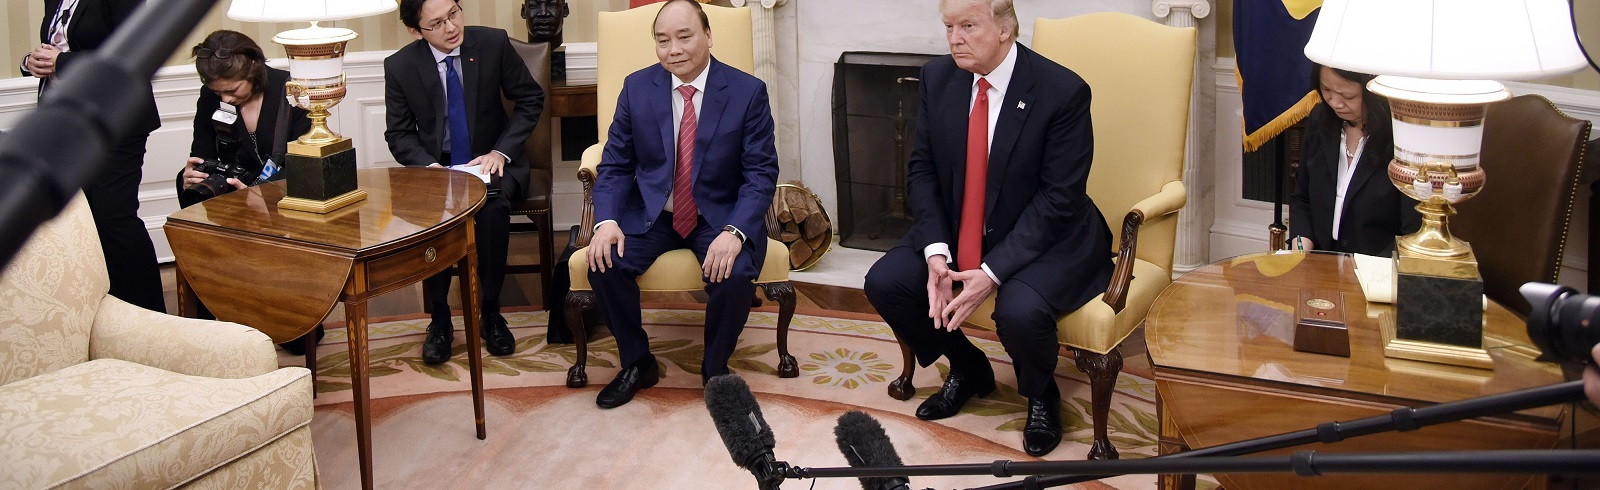 US President Donald Trump meets with Vietnam's Prime Minister Nguyen Xuan Phuc in the Oval Office of the White House, on 31 May. (Olivier Douliery-Pool/Getty Images)